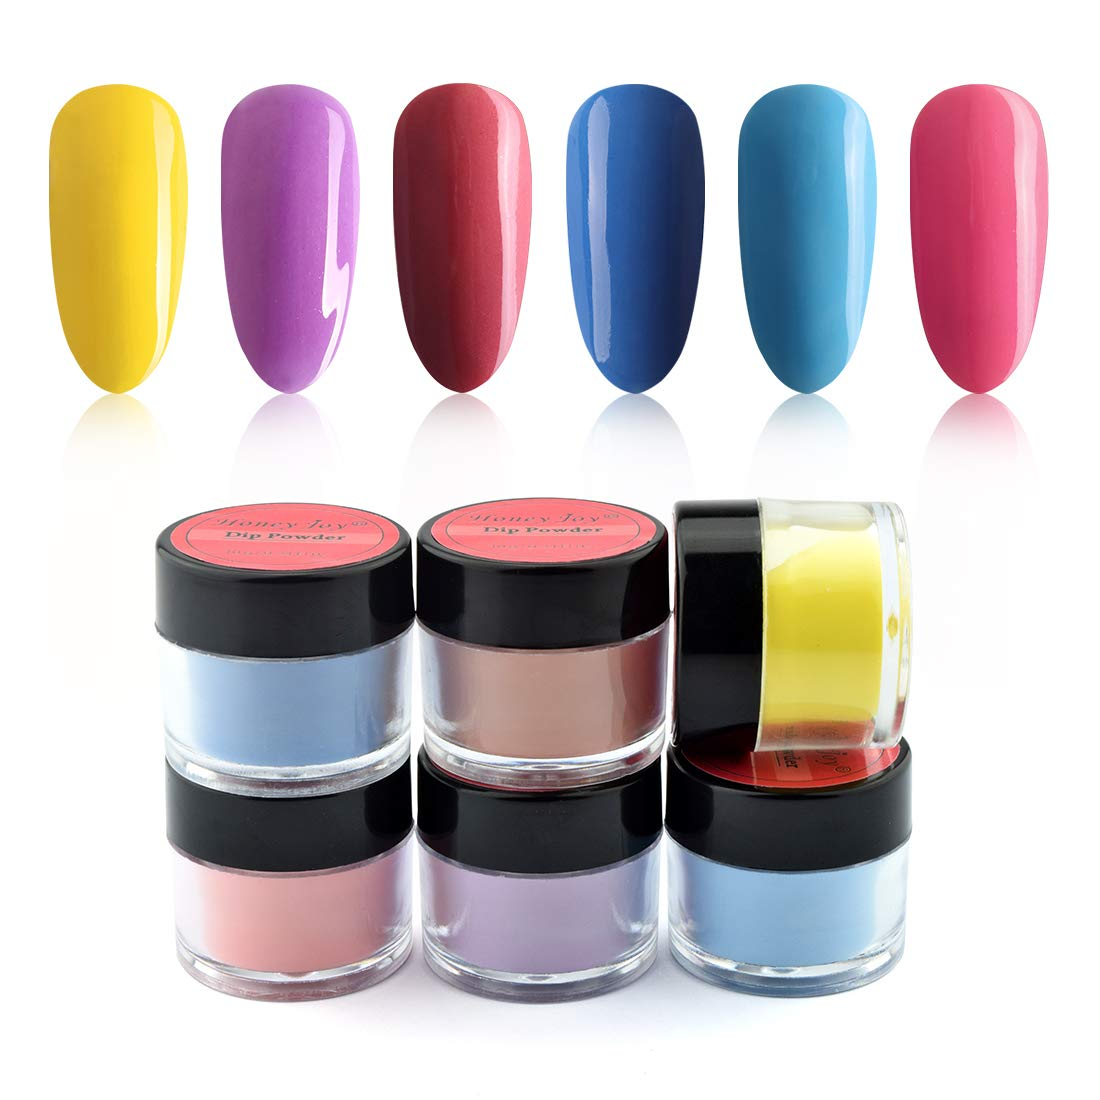 6 Box/Set Fine Dipping Powder Bright Yellow Purple Blue Rose Pink Colors No Need Lamp Cure Dip Powder Nails,Like Gel Polish Effect, Even & Smooth Finishing (112-04-65-09-79-70-10g/box)